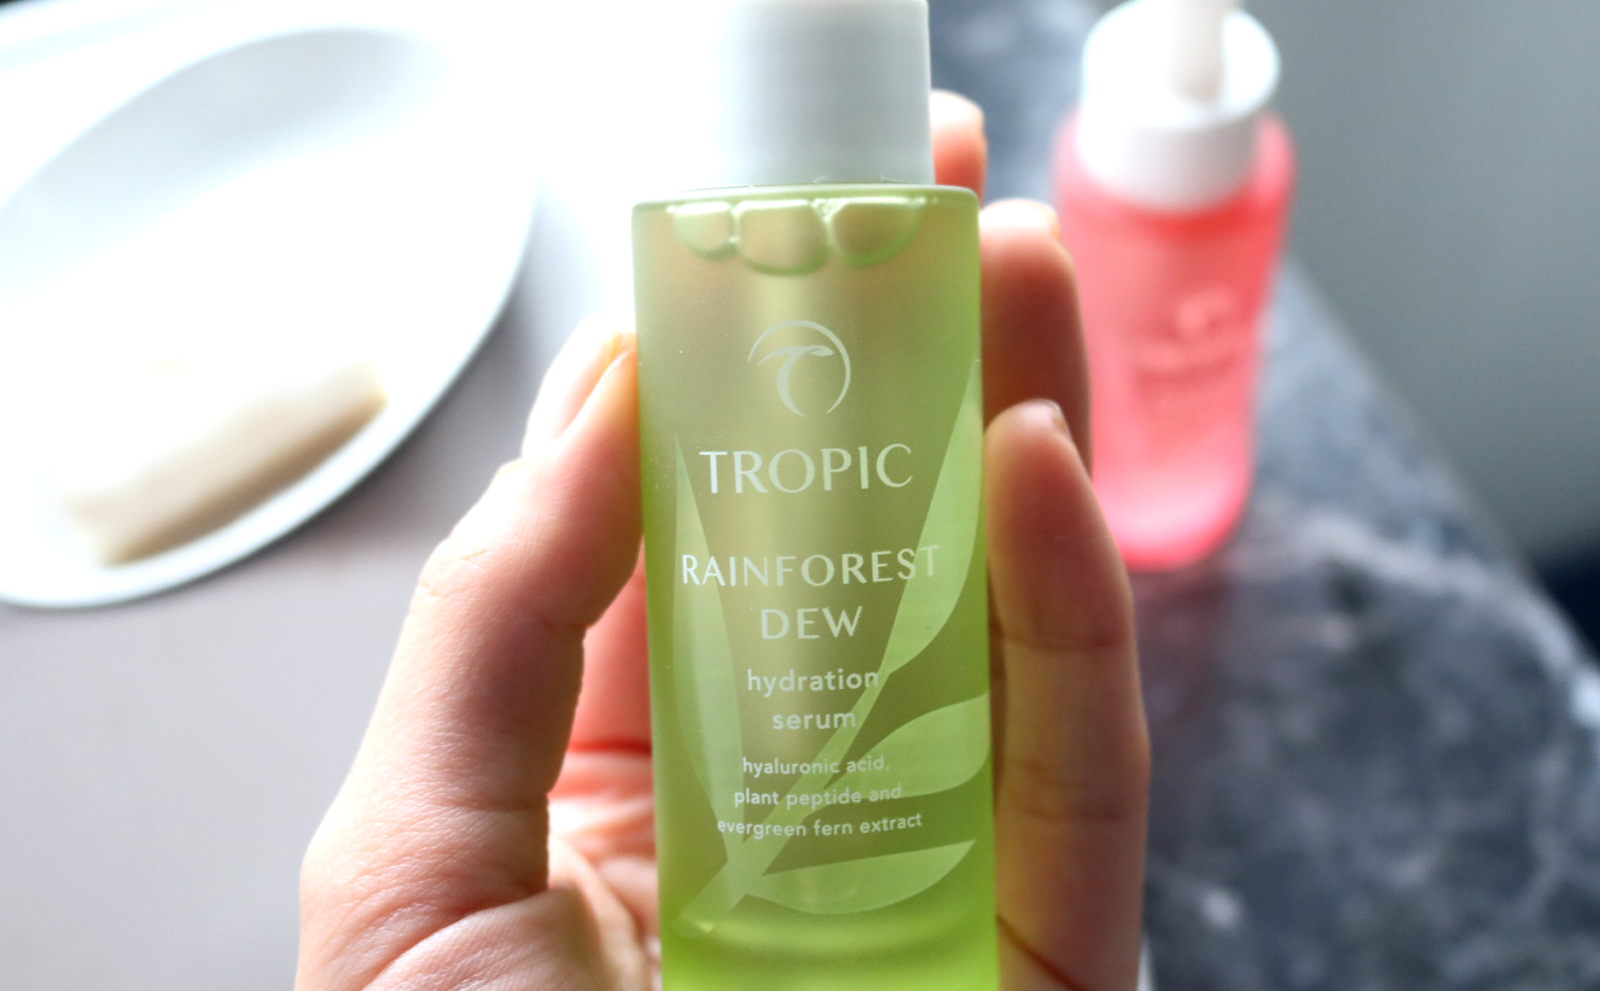 Tropic Rainforest Dew Serum review